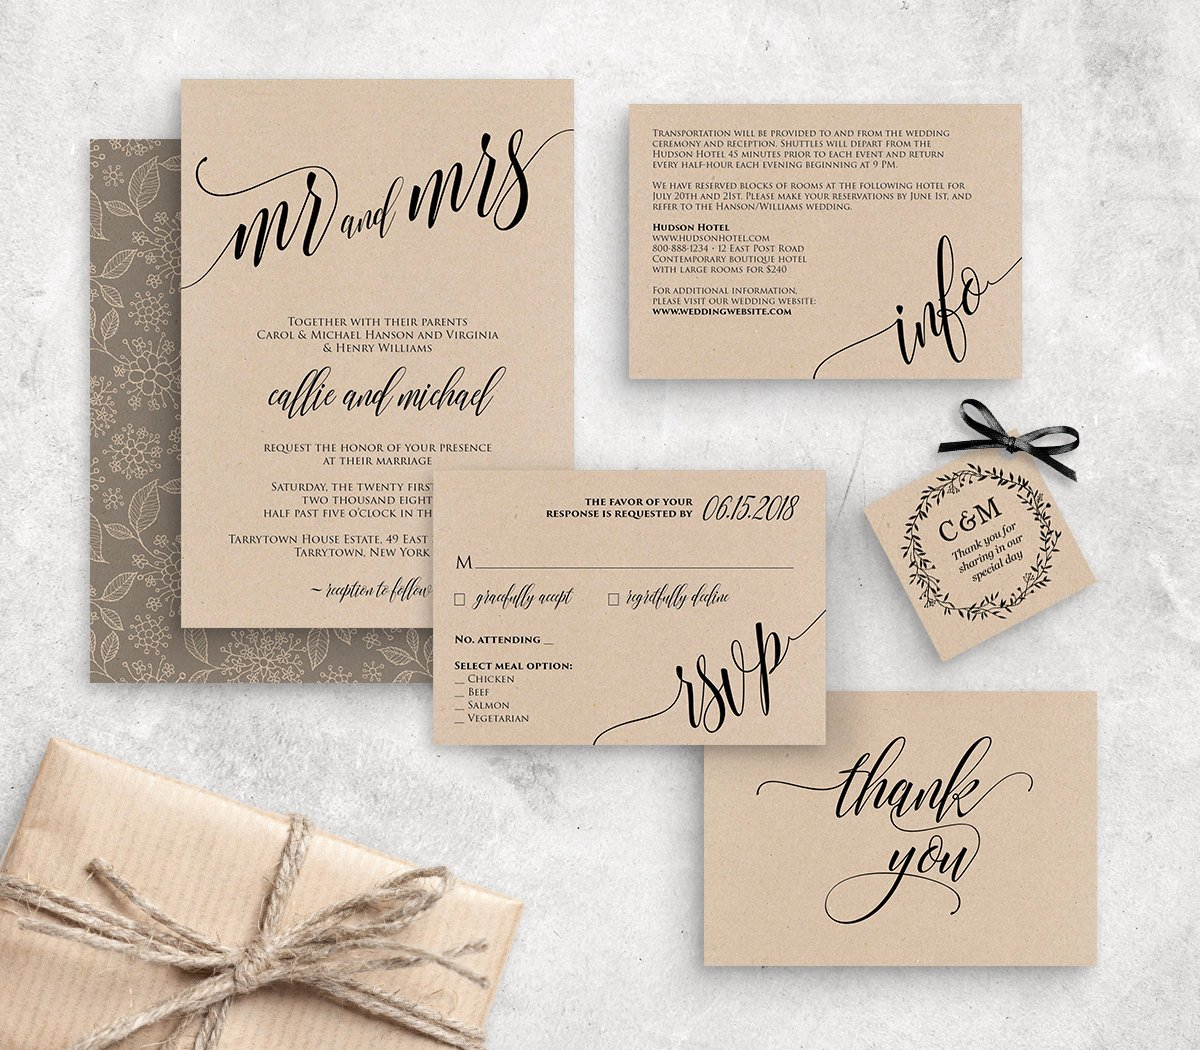 Rustic Wedding Invites Templates Luxury Wedding Invitation Template Instant Download Rustic Modern